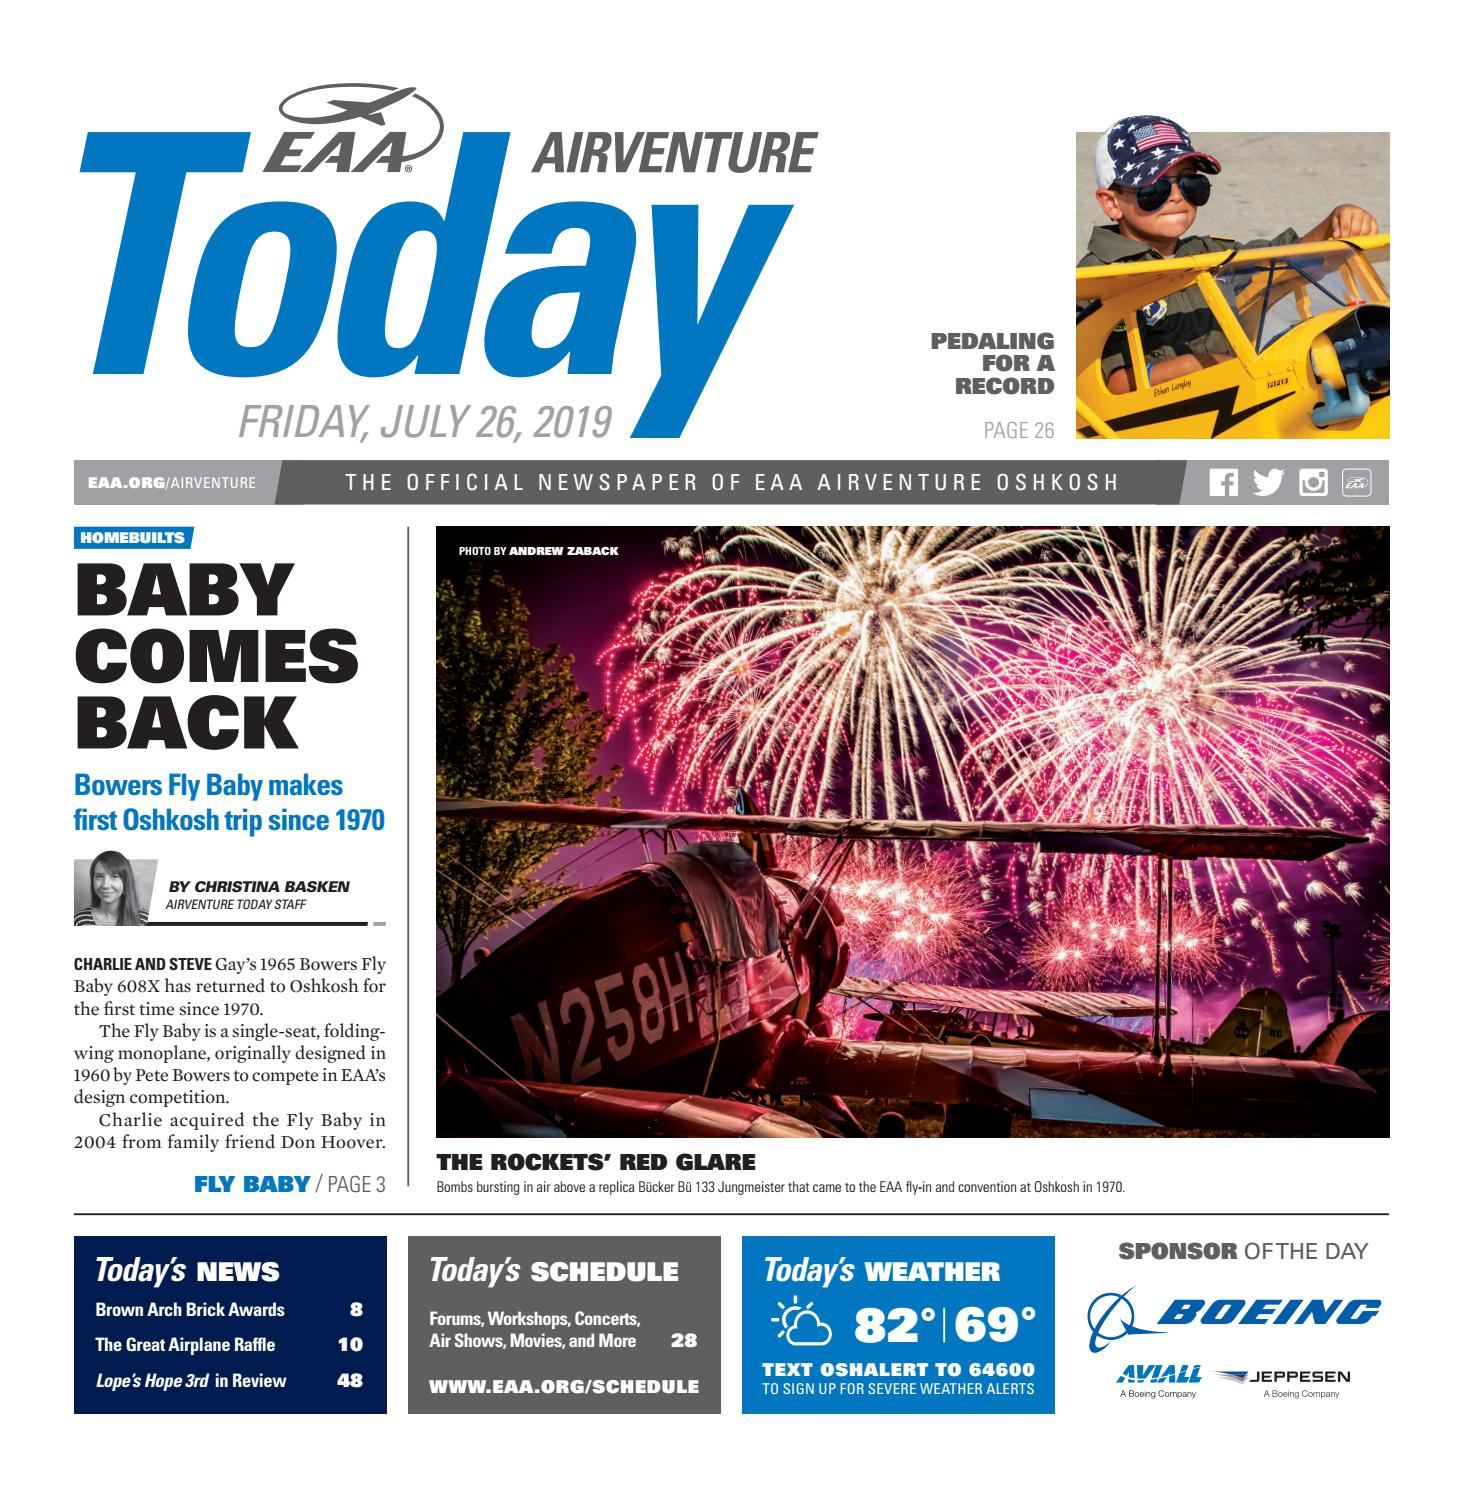 EAA AirVenture Today - Friday, July 26, 2019 by EAA